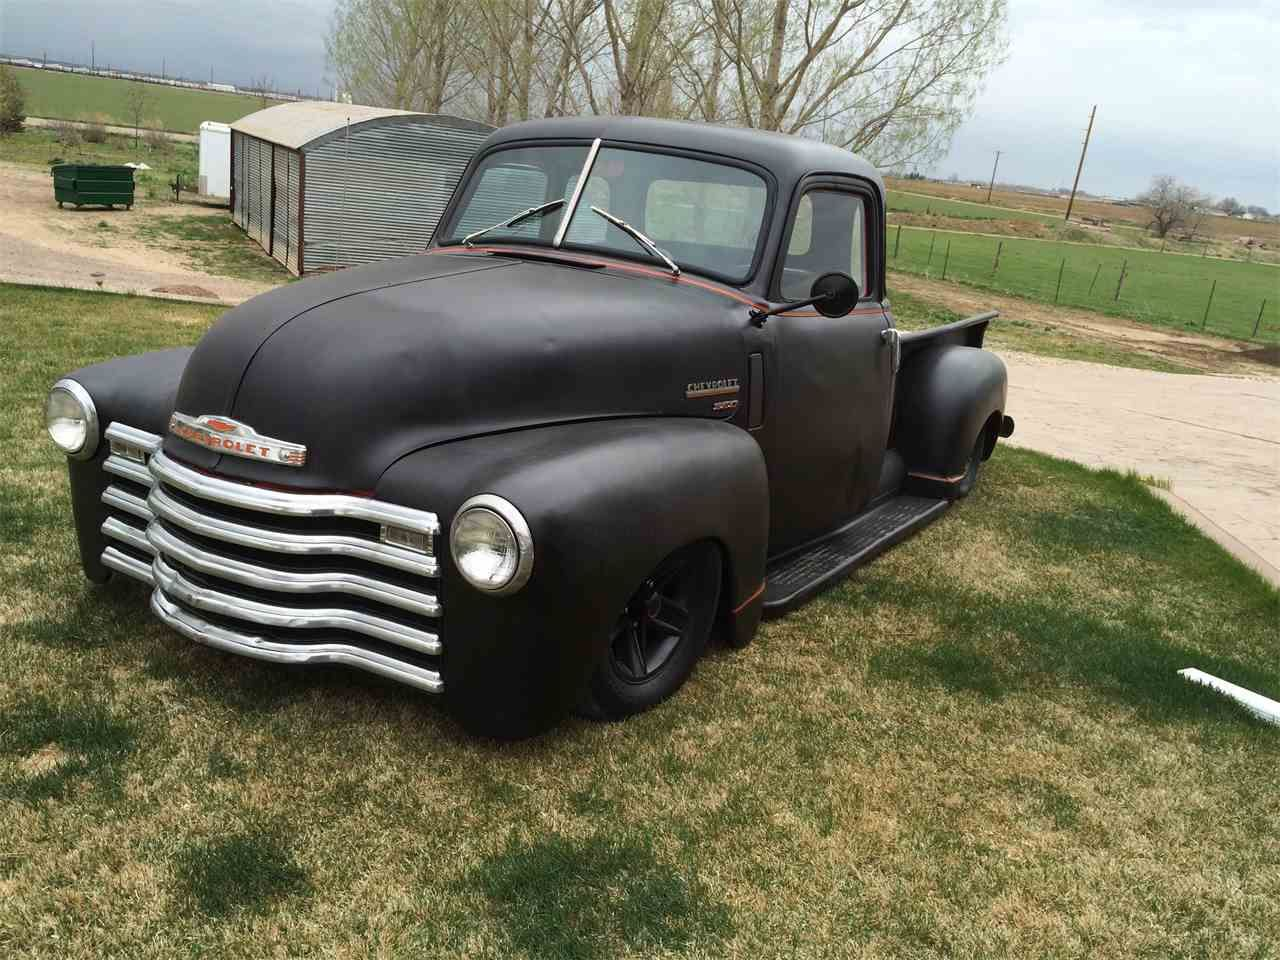 Pin by Piv on Hot rods and old muscle | Pinterest | Chevy pickups ...